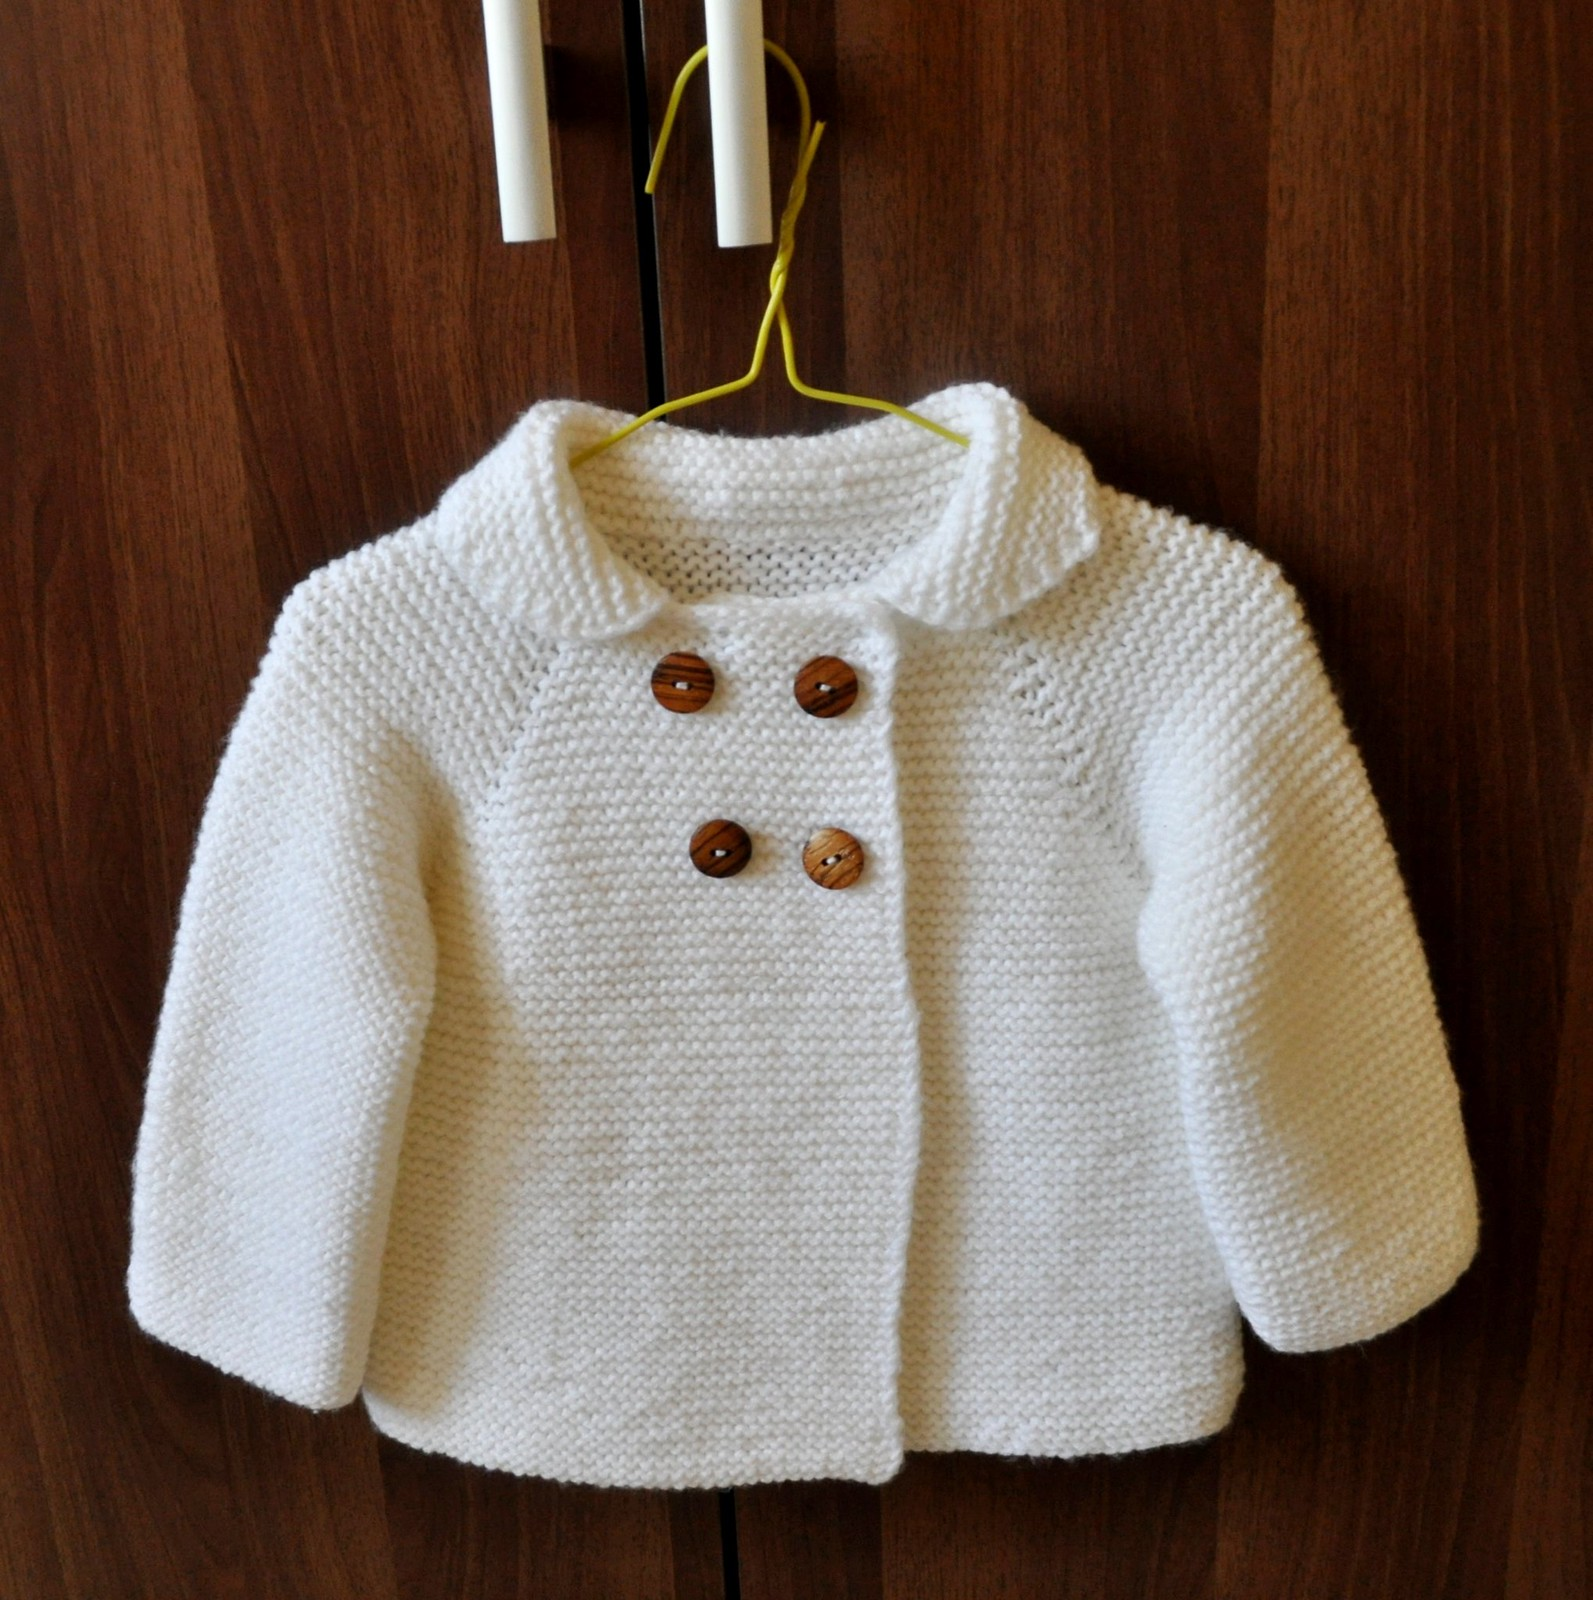 knitted baby cardigan (2)